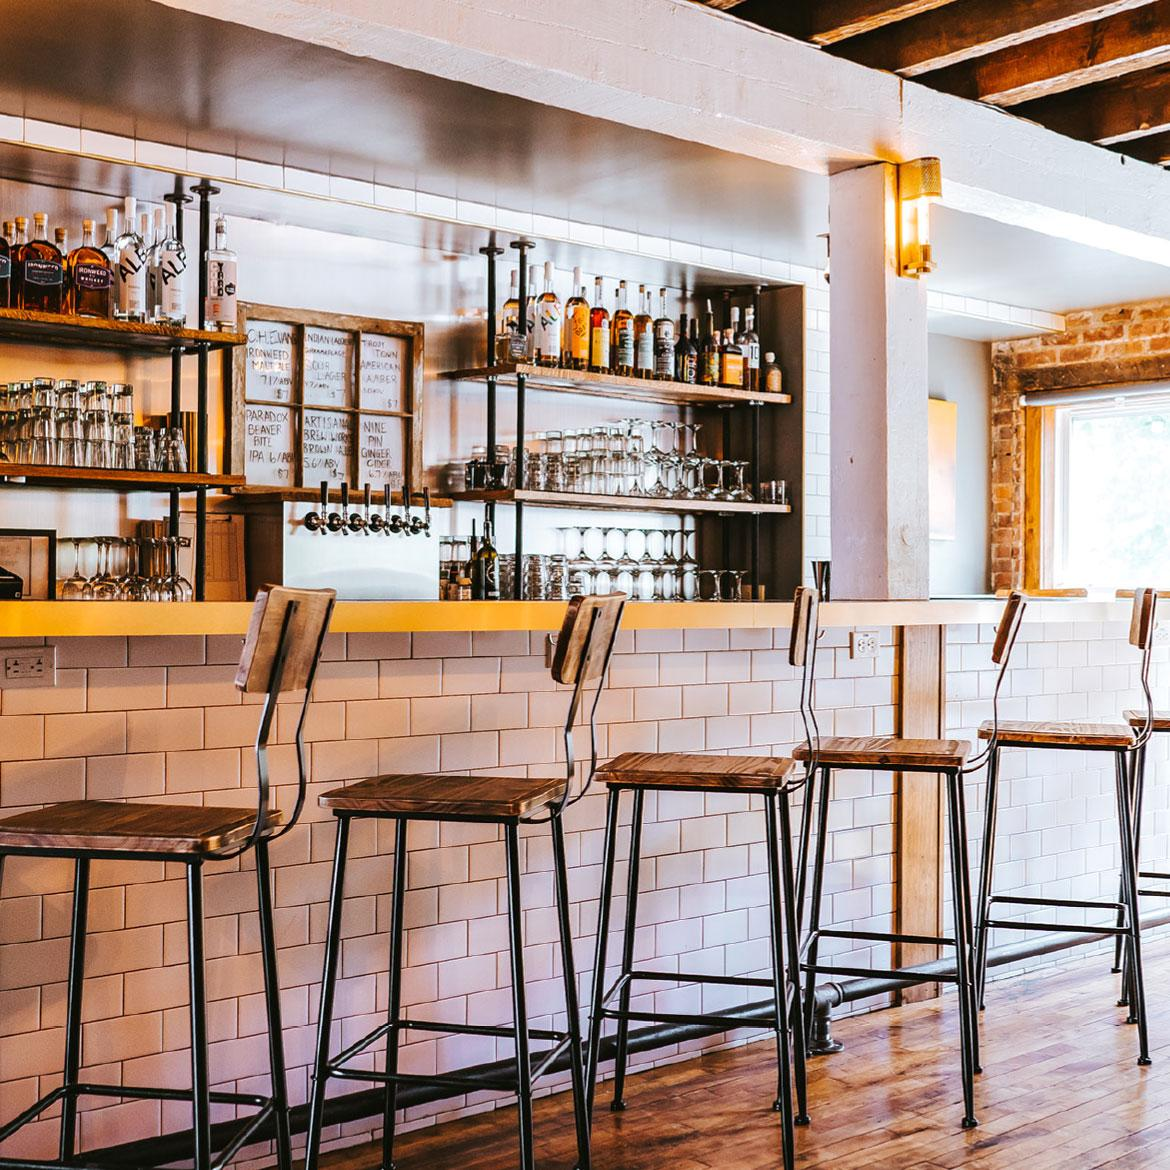 The Albany Distilling Company Bar and Bottle Shop